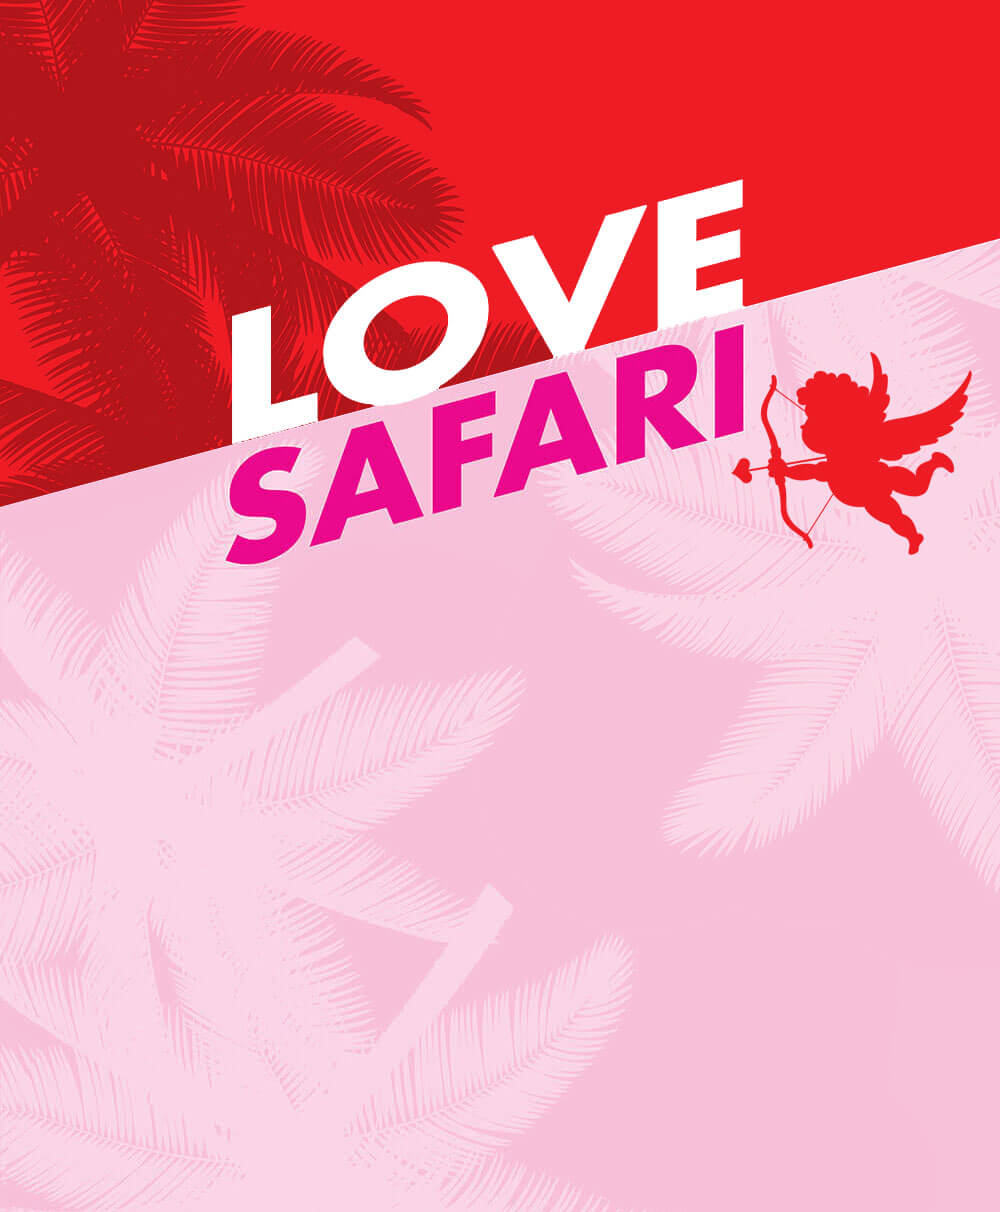 Love Safari